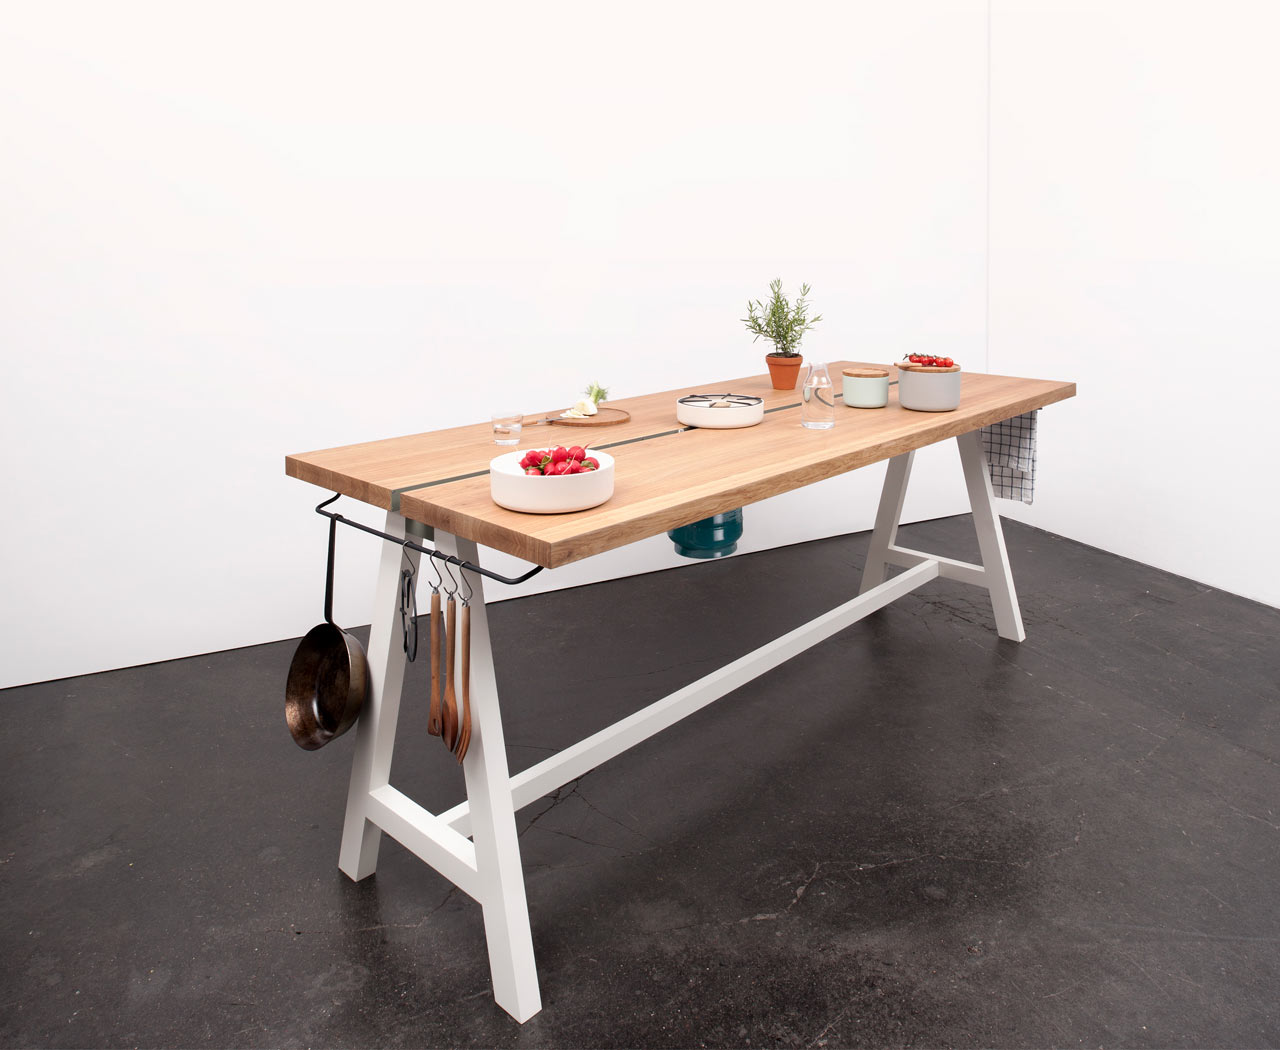 Moritz-Putzier-Cooking-Table-6